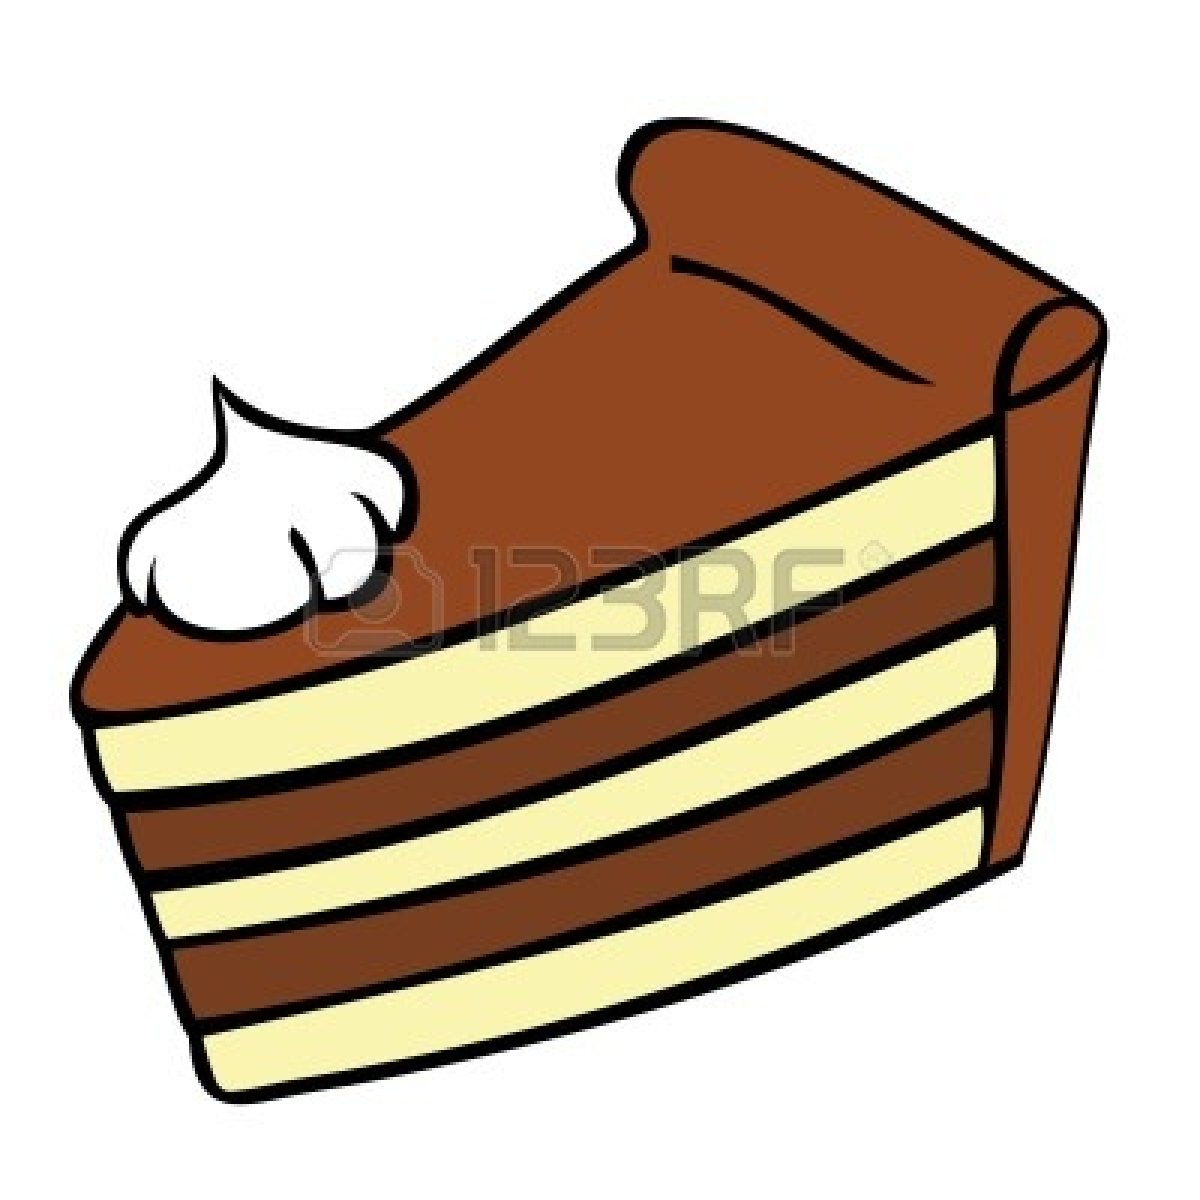 Slice Of Cake Clipart Black And White   Clipart Panda   Free Clipart